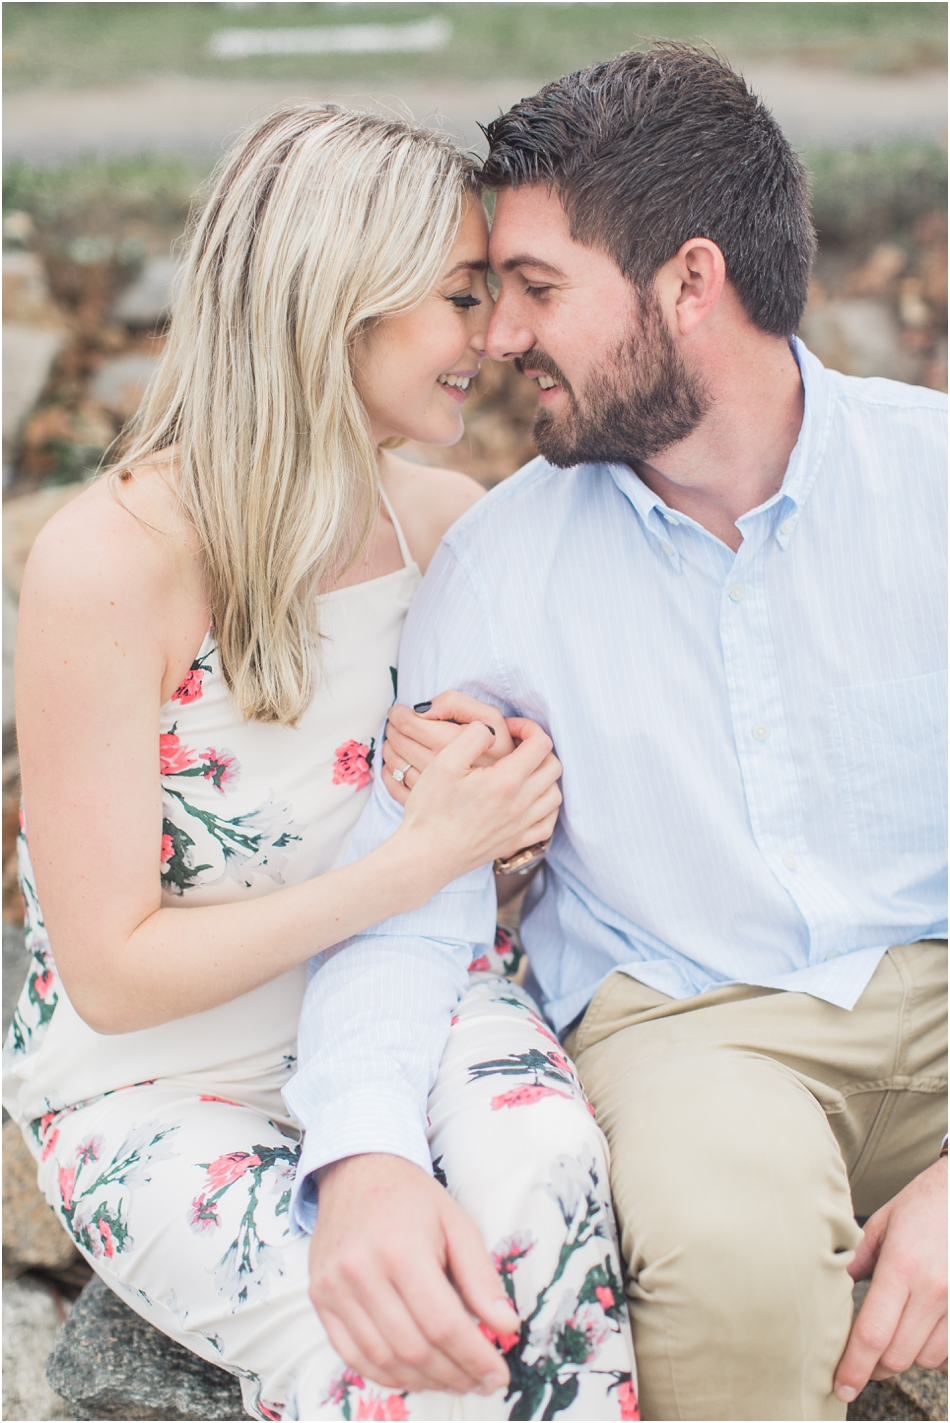 downtown_plymouth_engagement_lindsey_paul_cape_cod_boston_new_england_wedding_photographer_Meredith_Jane_Photography_photo_2793.jpg